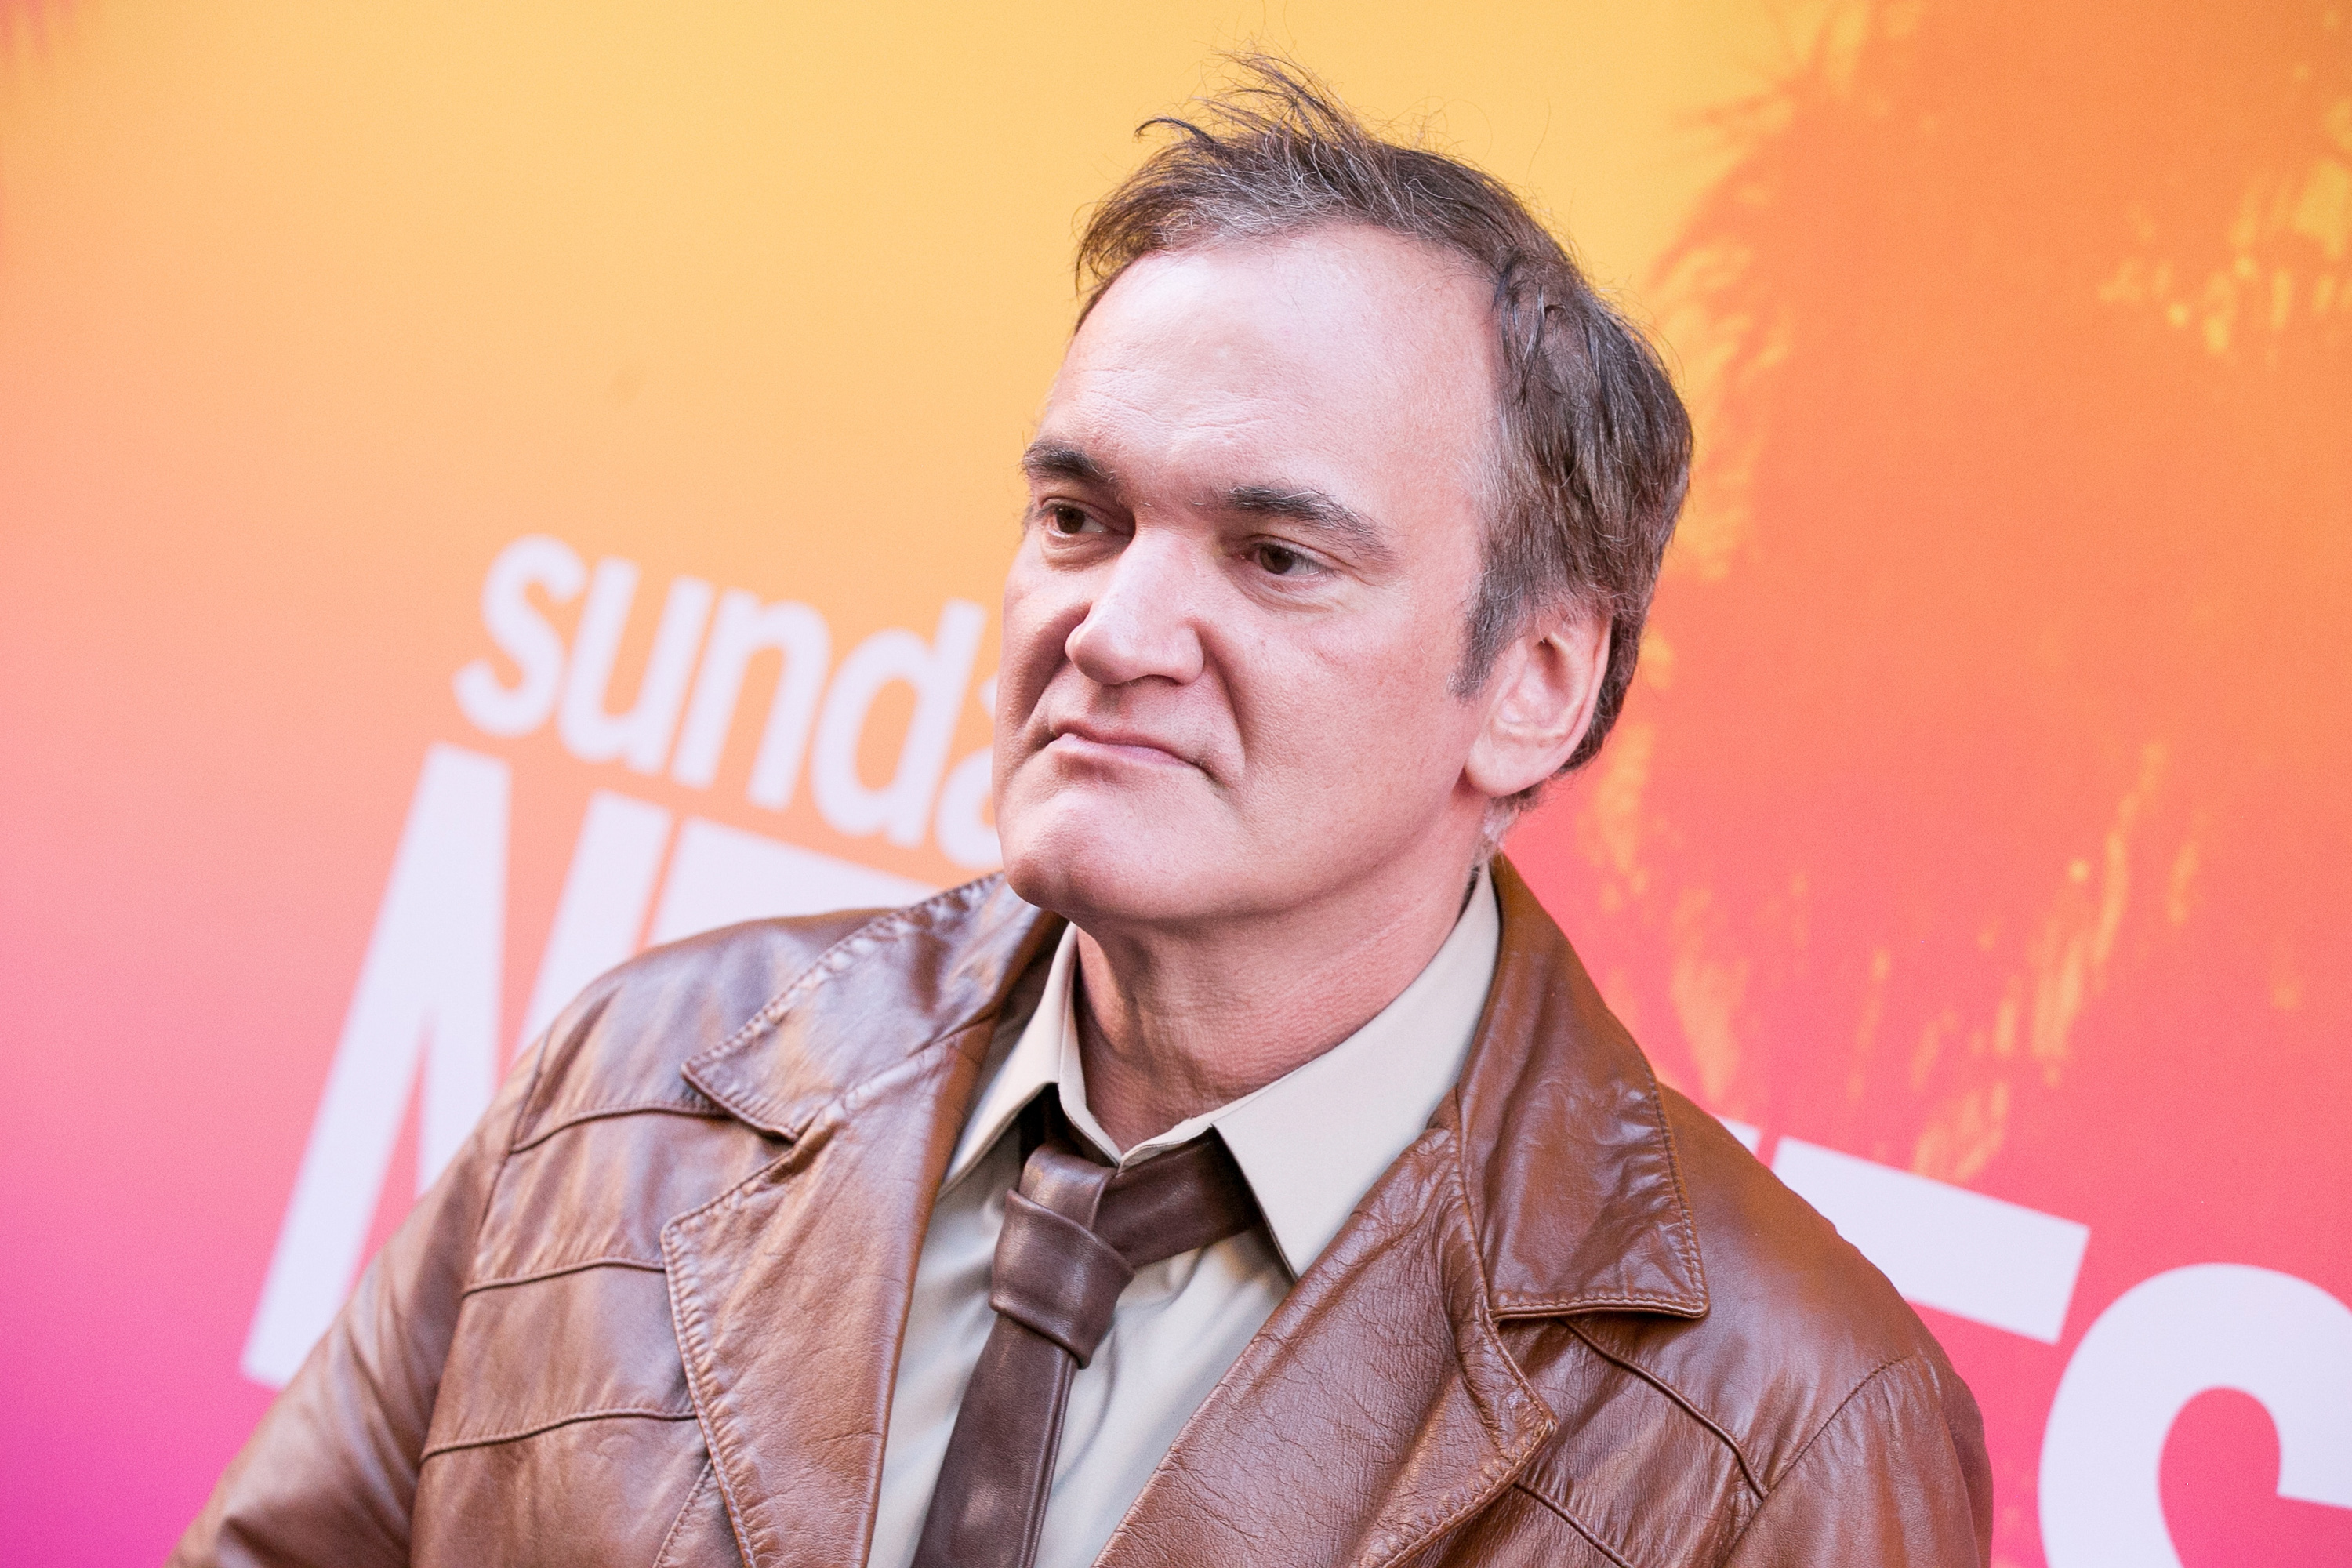 Quentin Tarantino arrives for Sundance NEXT FEST Opening Night Honoring Quentin Tarantino at The Theater at The Ace Hotel on August 10, 2017 in Los Angeles, California.